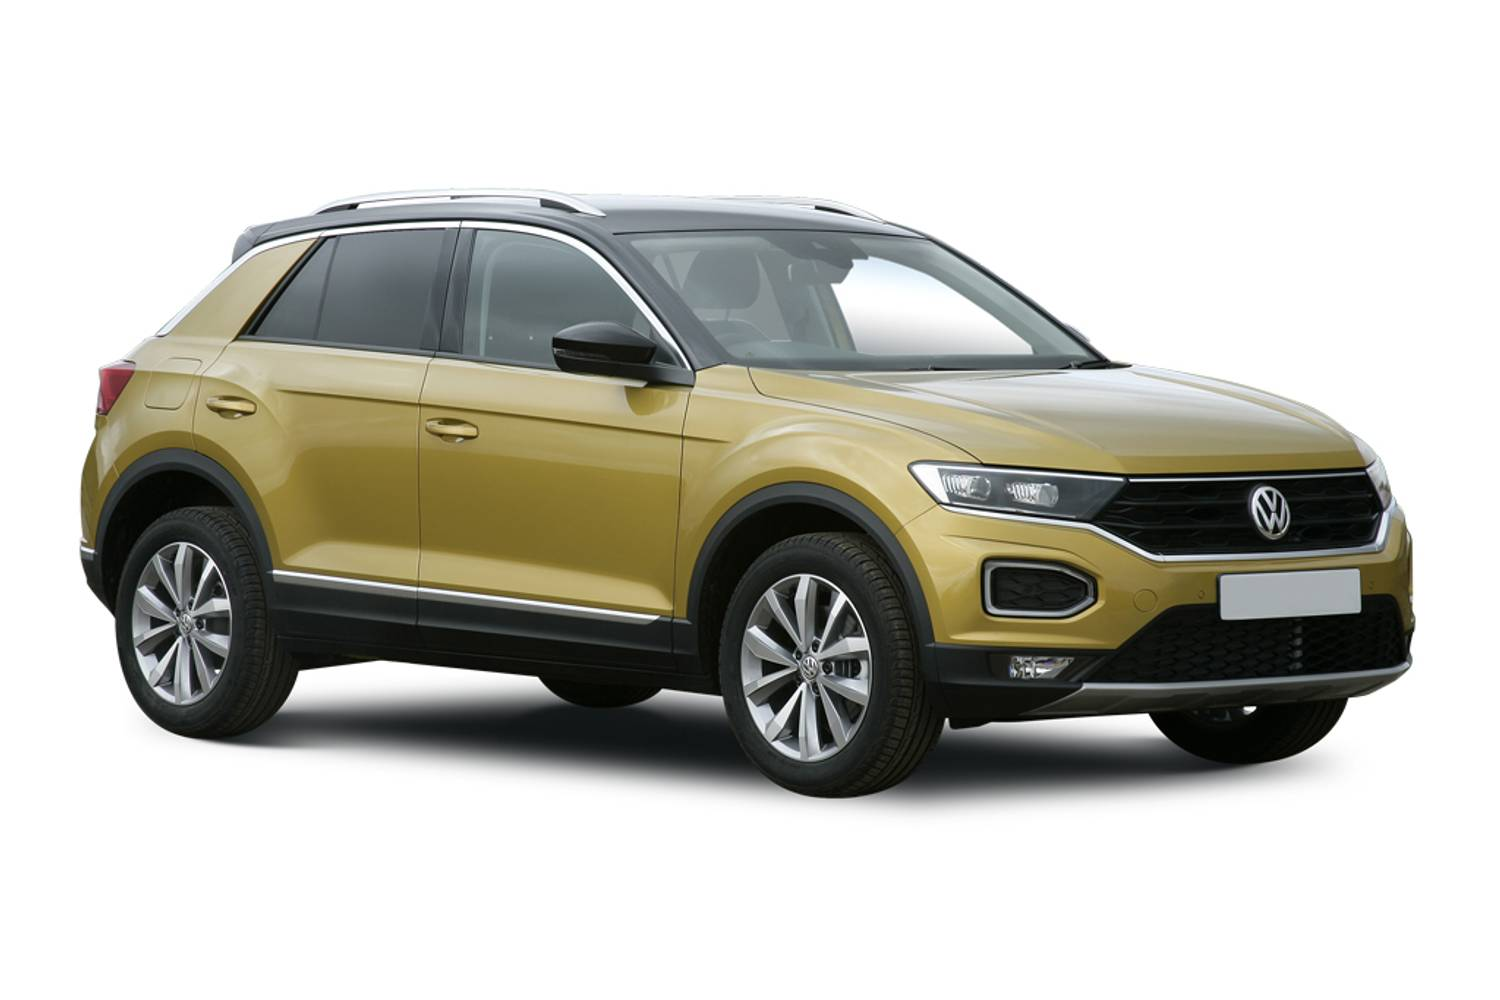 Vw Motability >> New Volkswagen T-Roc Hatchback 1.5 TSI EVO SE 5-door DSG (2018-) for Sale